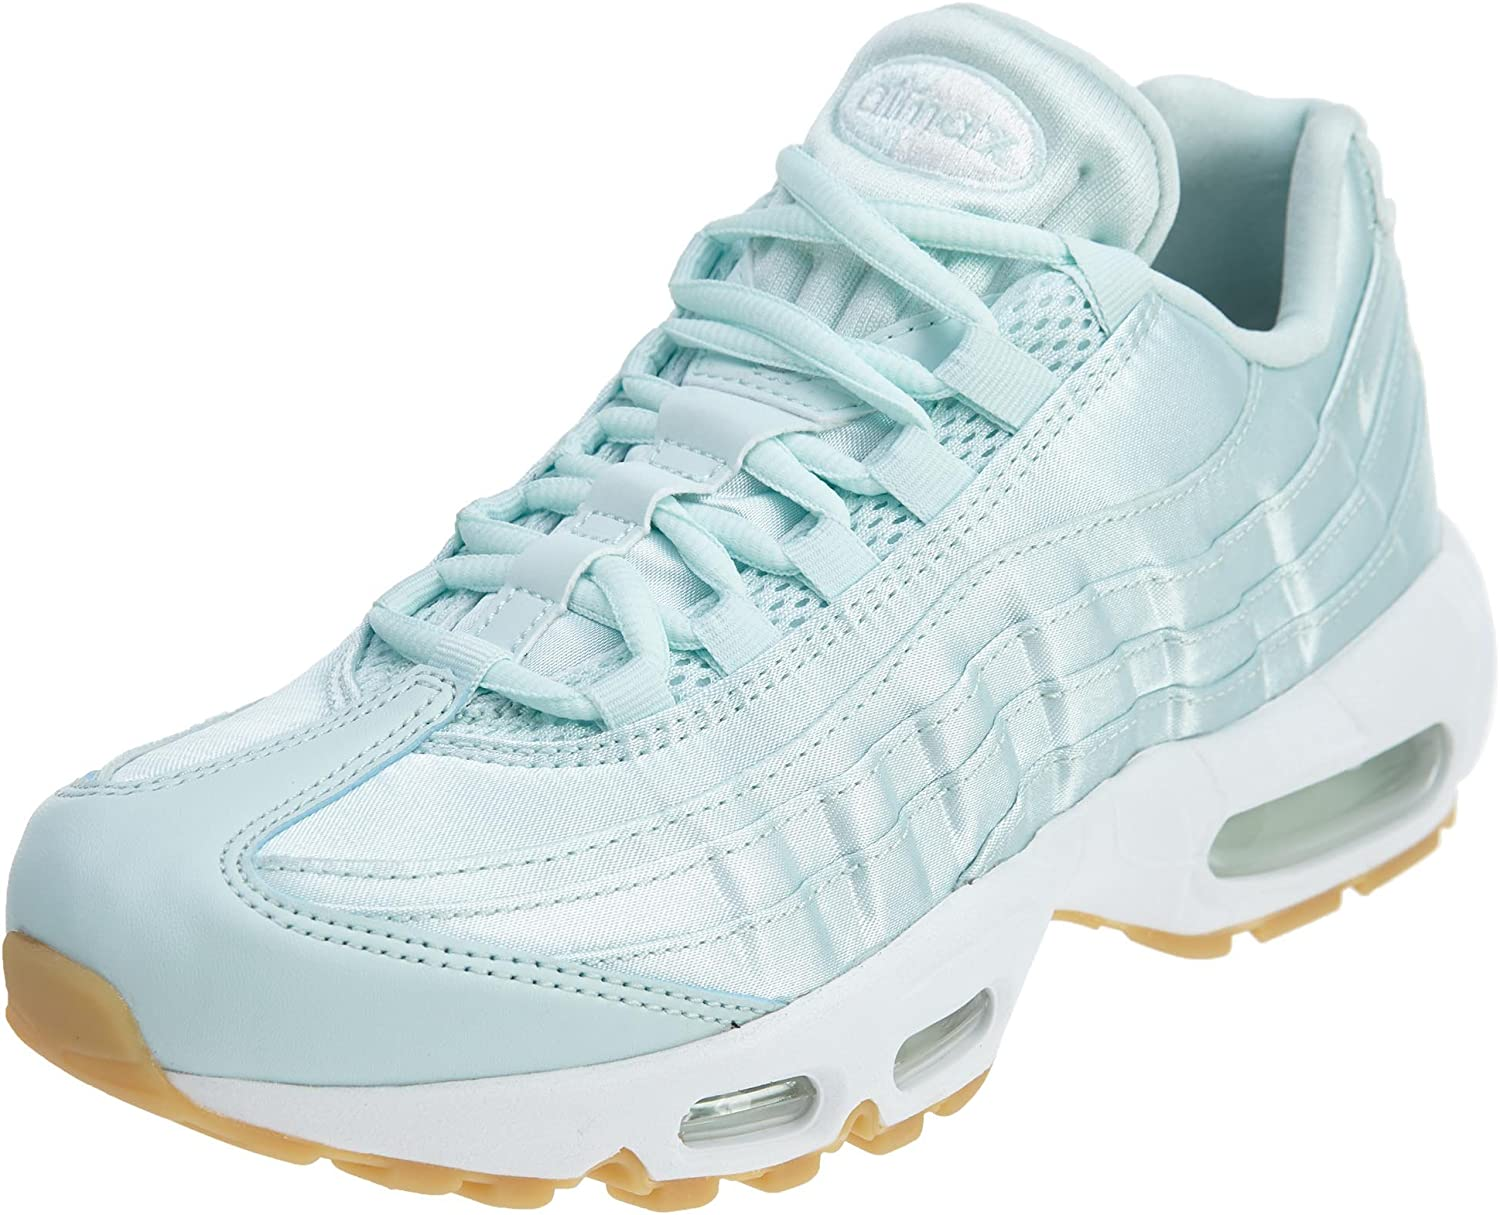 Nike Womens Air Max 95 WQS Lace-Up Low Top Fashion Sneakers